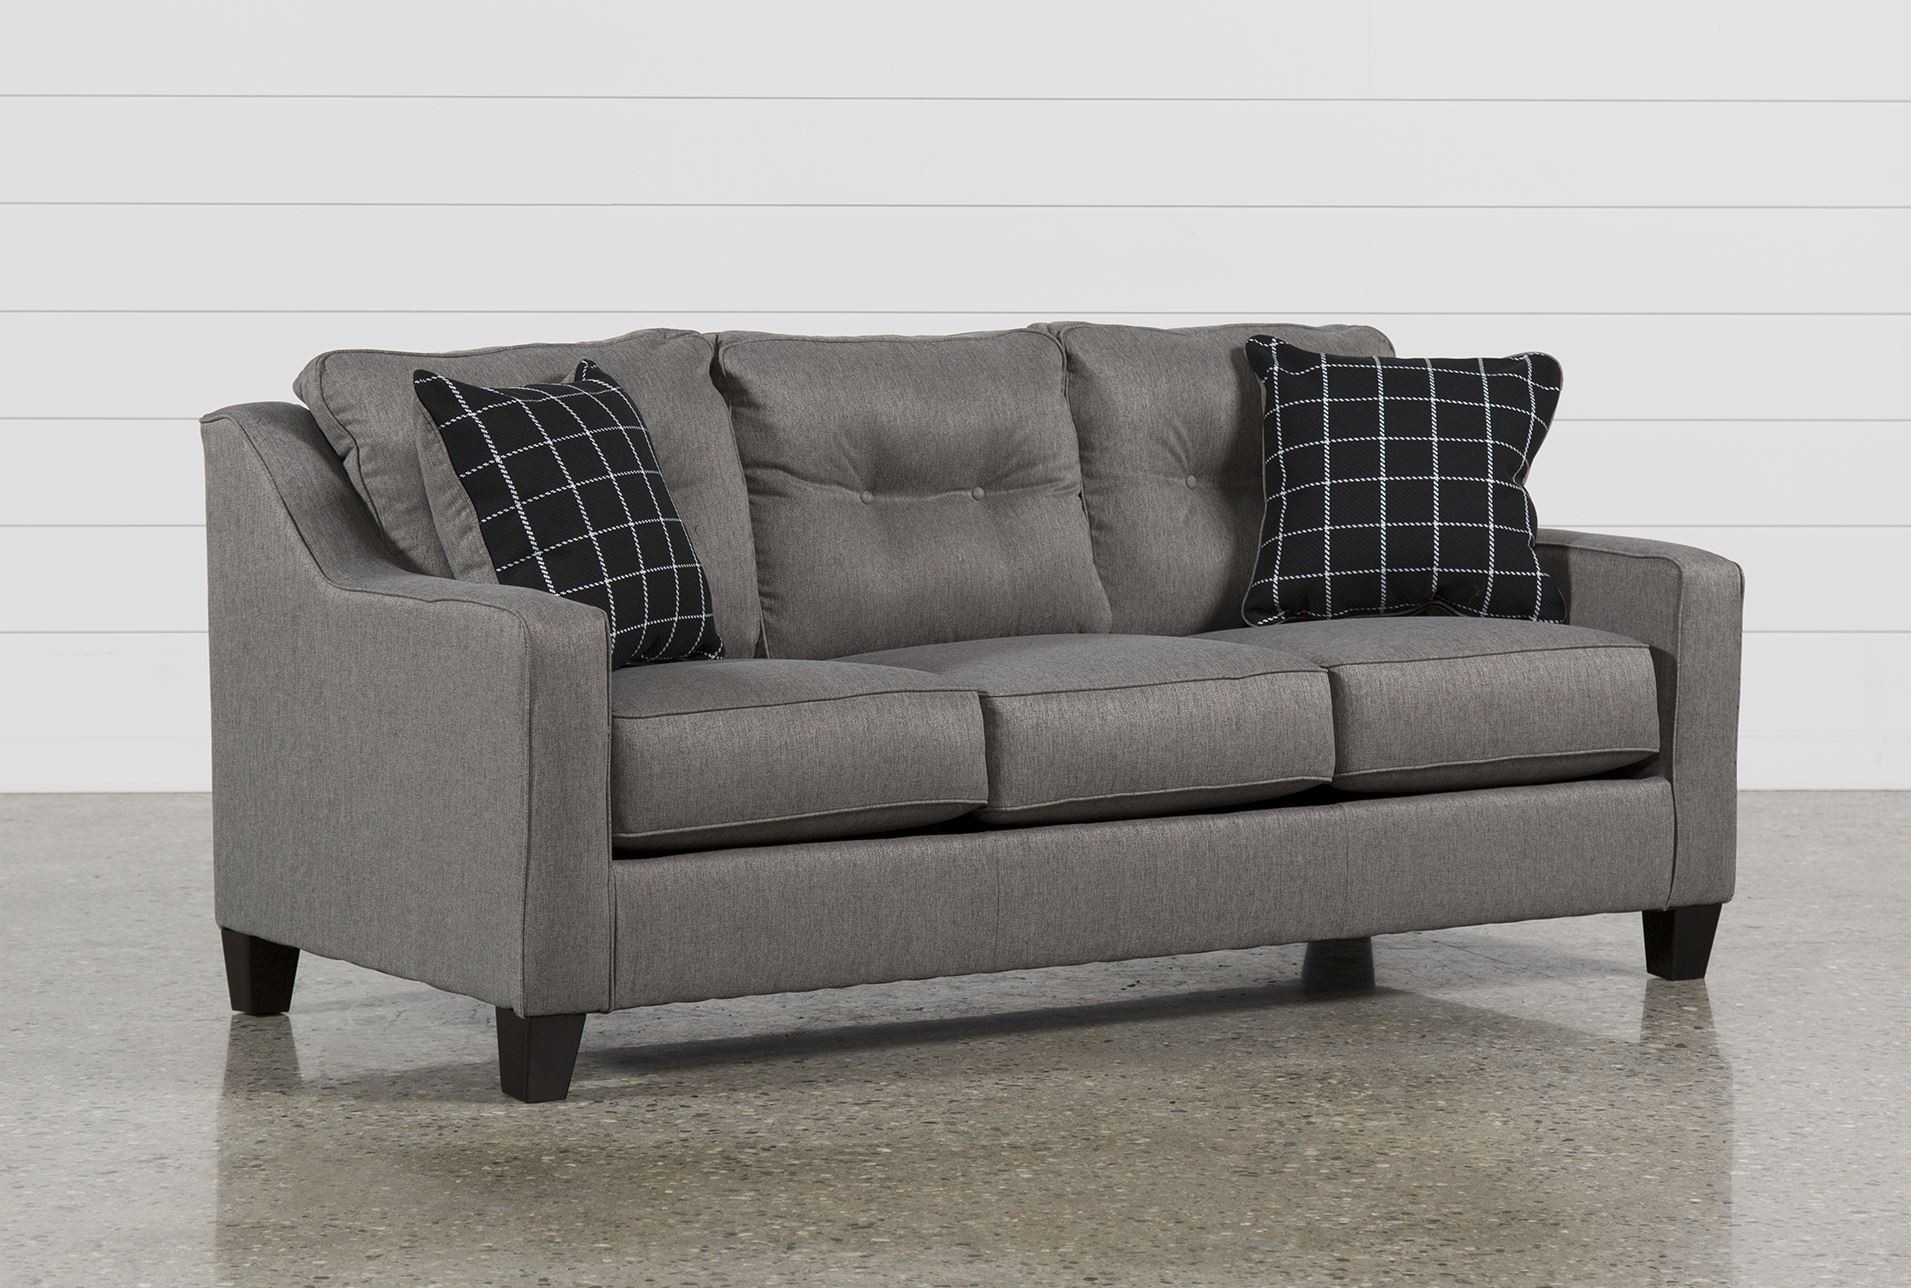 Best ideas about Sectional Sleeper Sofa Queen . Save or Pin Brindon Charcoal Queen Sofa Sleeper Living Spaces Now.